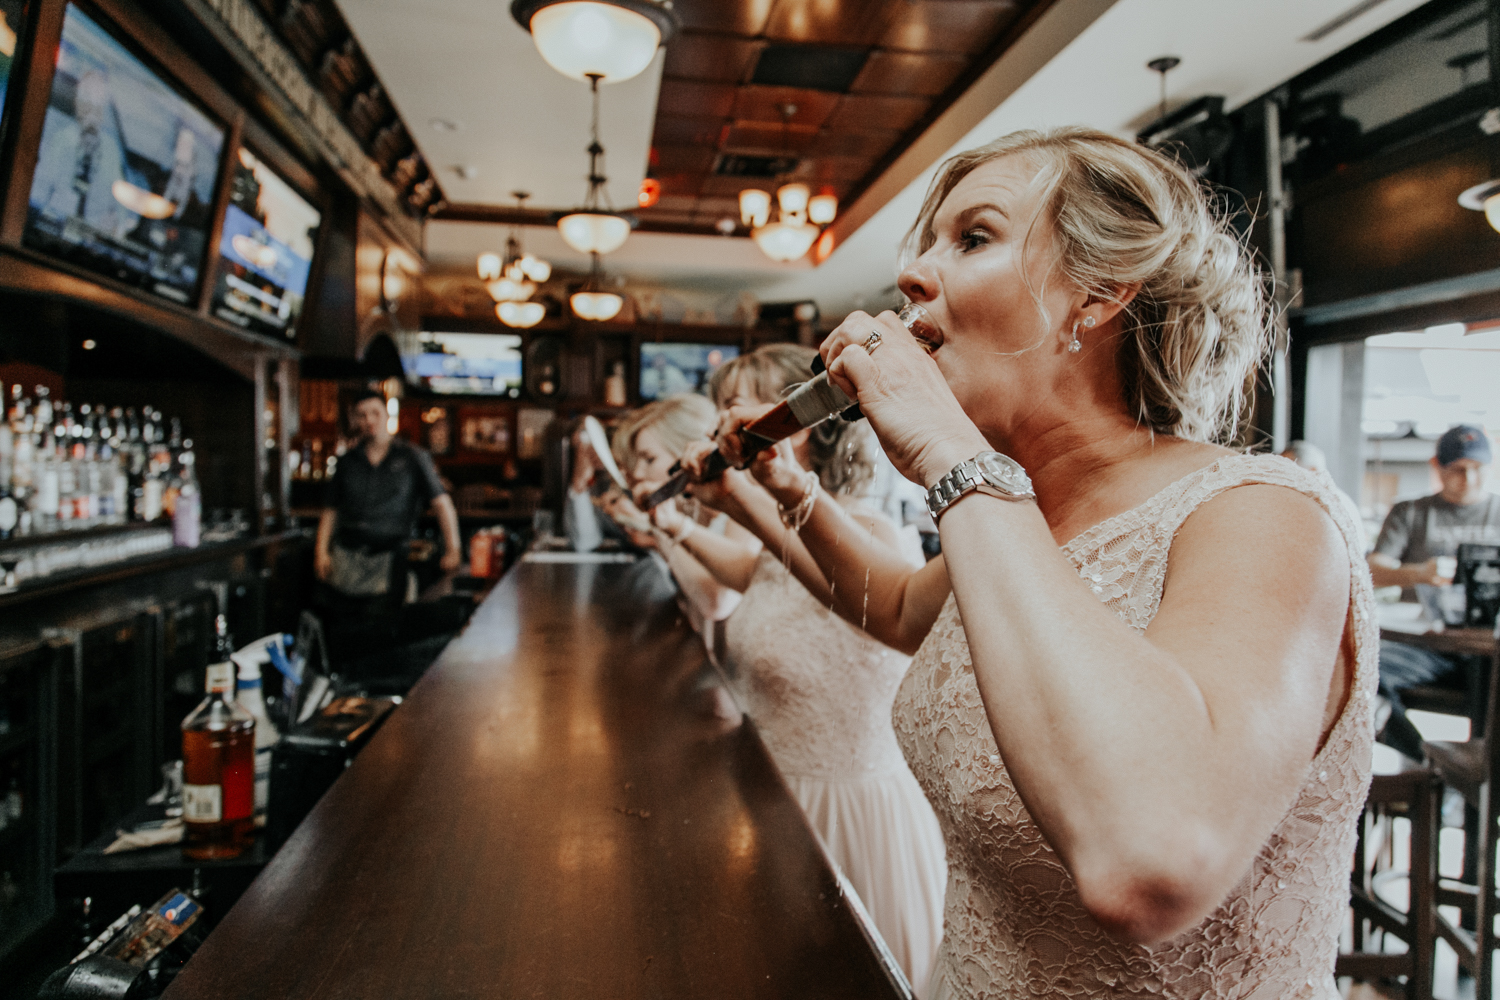 hudsons-tap-house-lethbridge-love-and-be-loved-photography-wedding-image-picture-photo-8.jpg